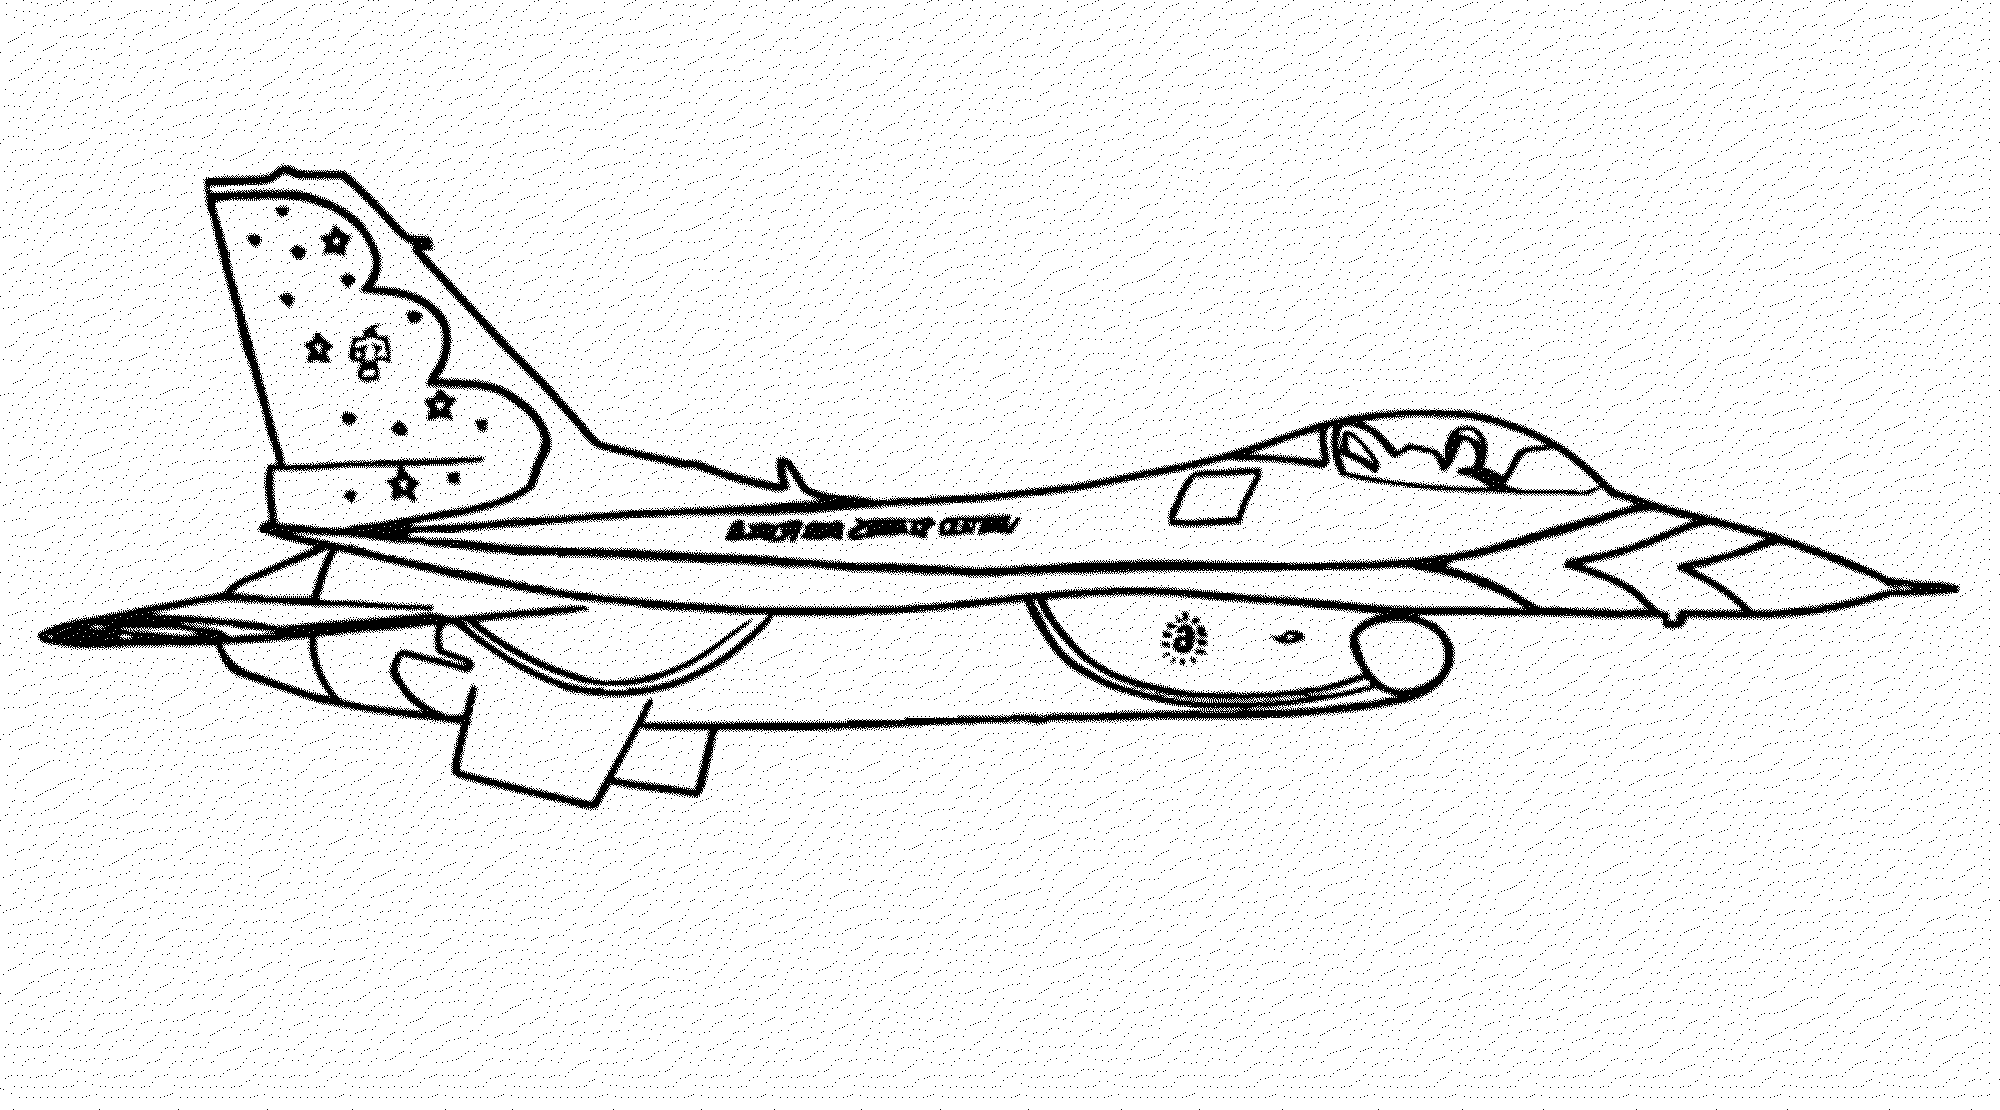 military airplane coloring pages military images free clipartsco pages airplane coloring military